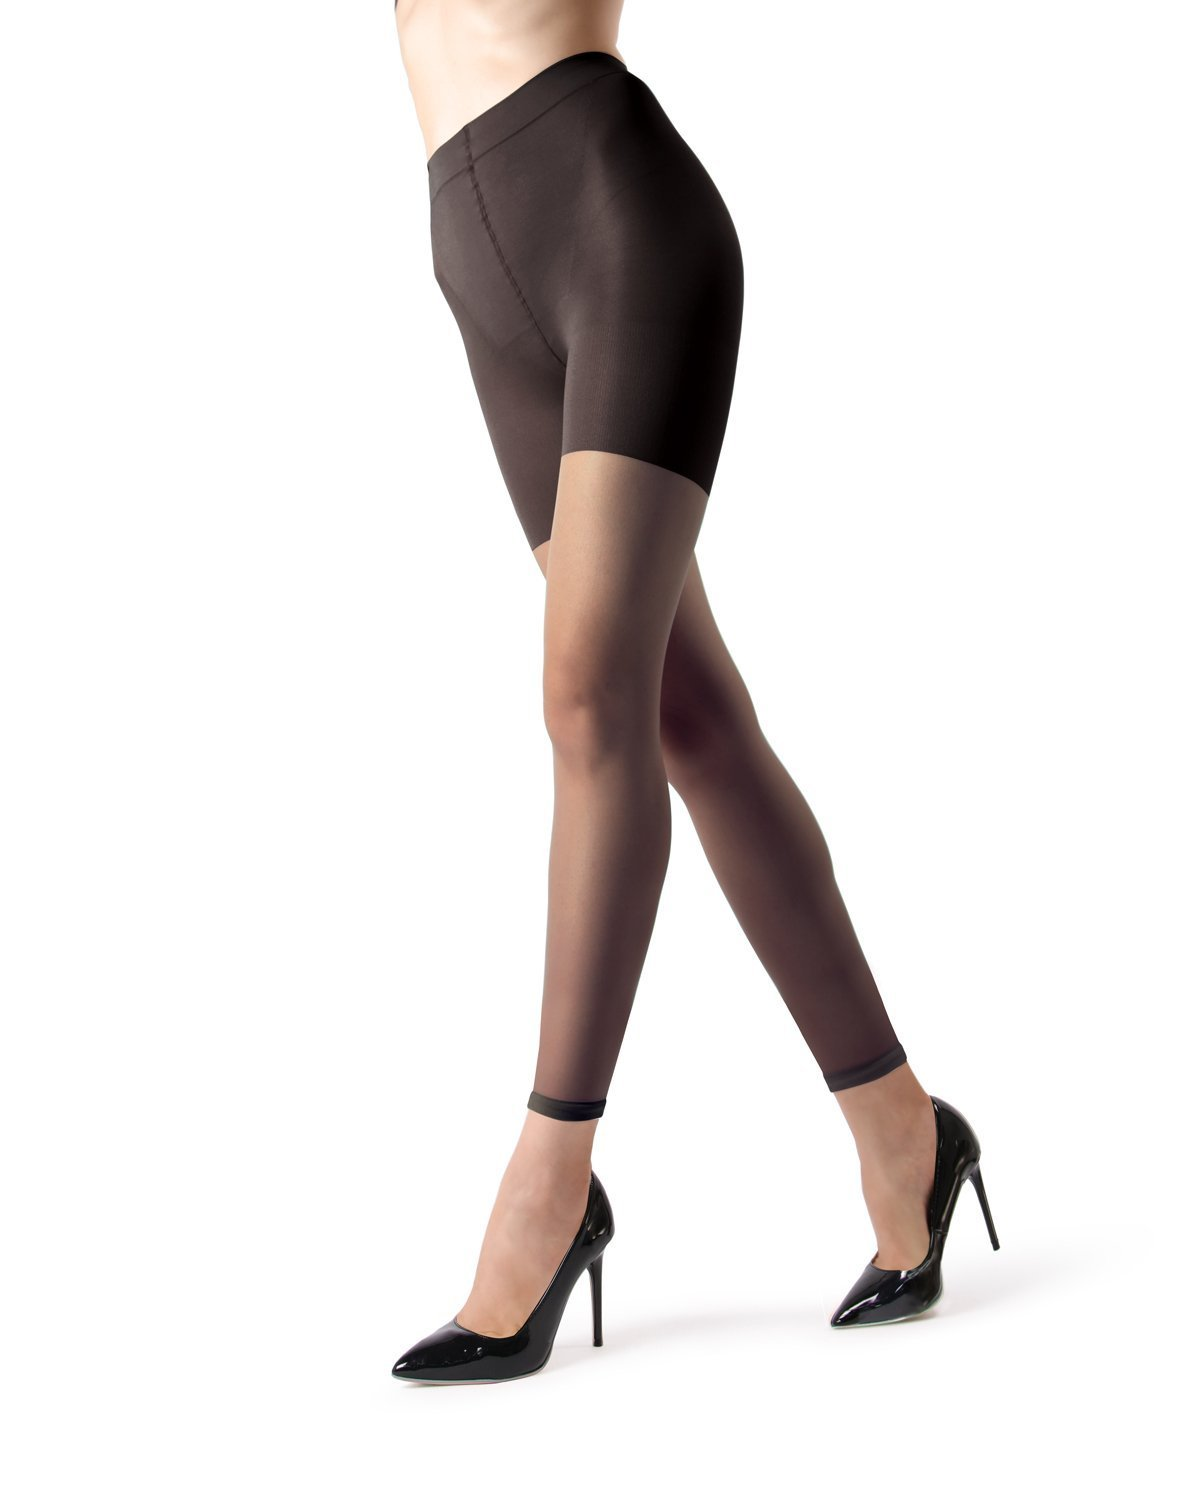 MeMoi Sheer Footless Capri Shaping Tights | Women's Pantyhose - Nylons Black MM 226 Large